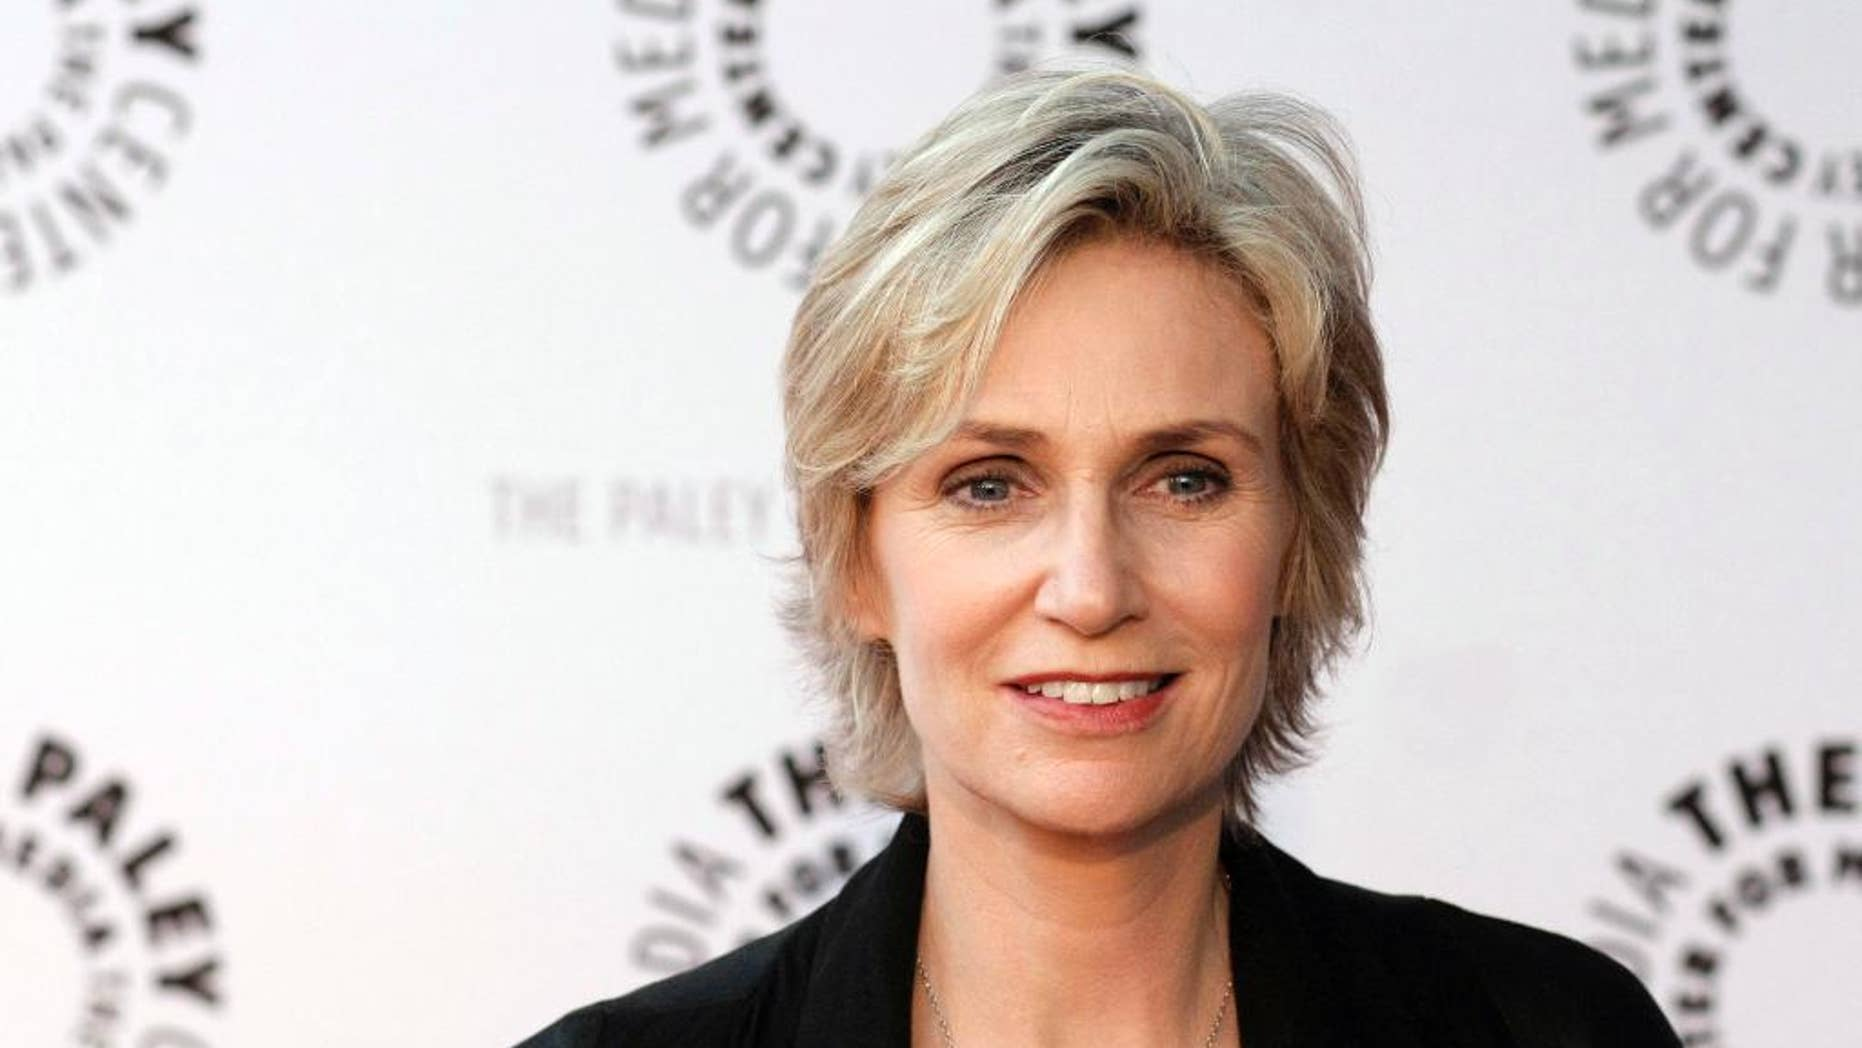 """FILE - In this March 13, 2010, file photo, actress Jane Lynch arrives at the """"Glee"""" PaleyFest panel discussion in Beverly Hills, Calif. Lynch will attend the opening ceremony of the Special Olympics USA Games on Sunday. (AP Photo/Dan Steinberg, File)"""